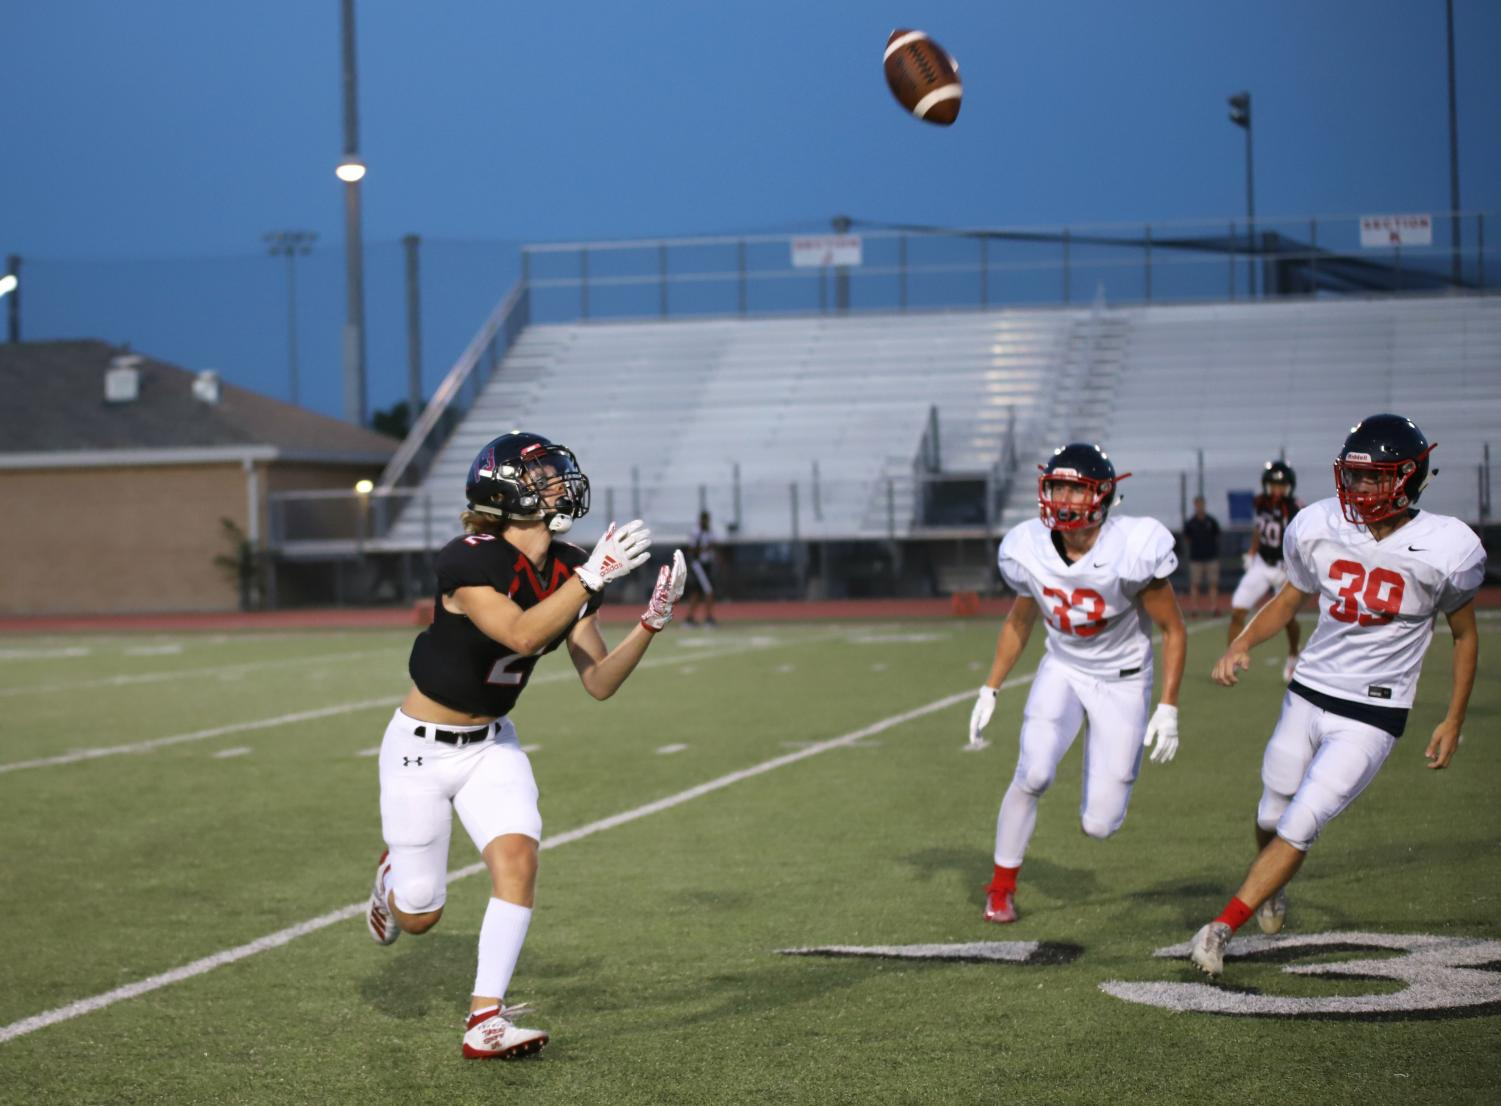 Junior+Luke+Mayfield+receives+a+punt++from+Frisco+Centennial+and+returns+the+ball+beyond+the+30+yard+line.